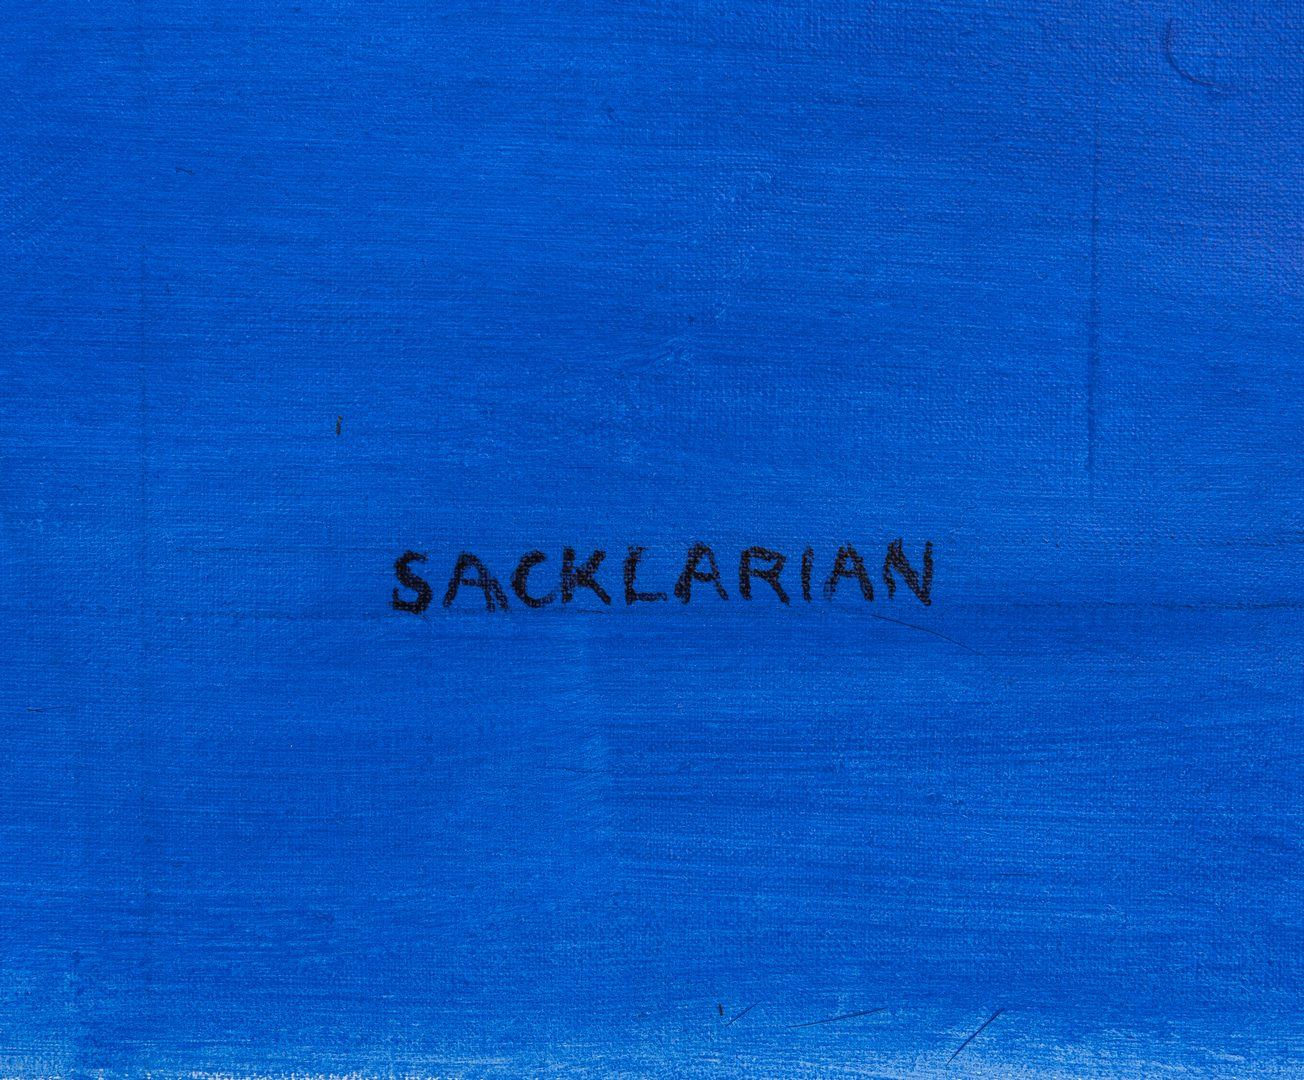 Lot 539: Untitled Abstract on Canvas by Stephen Sacklarian